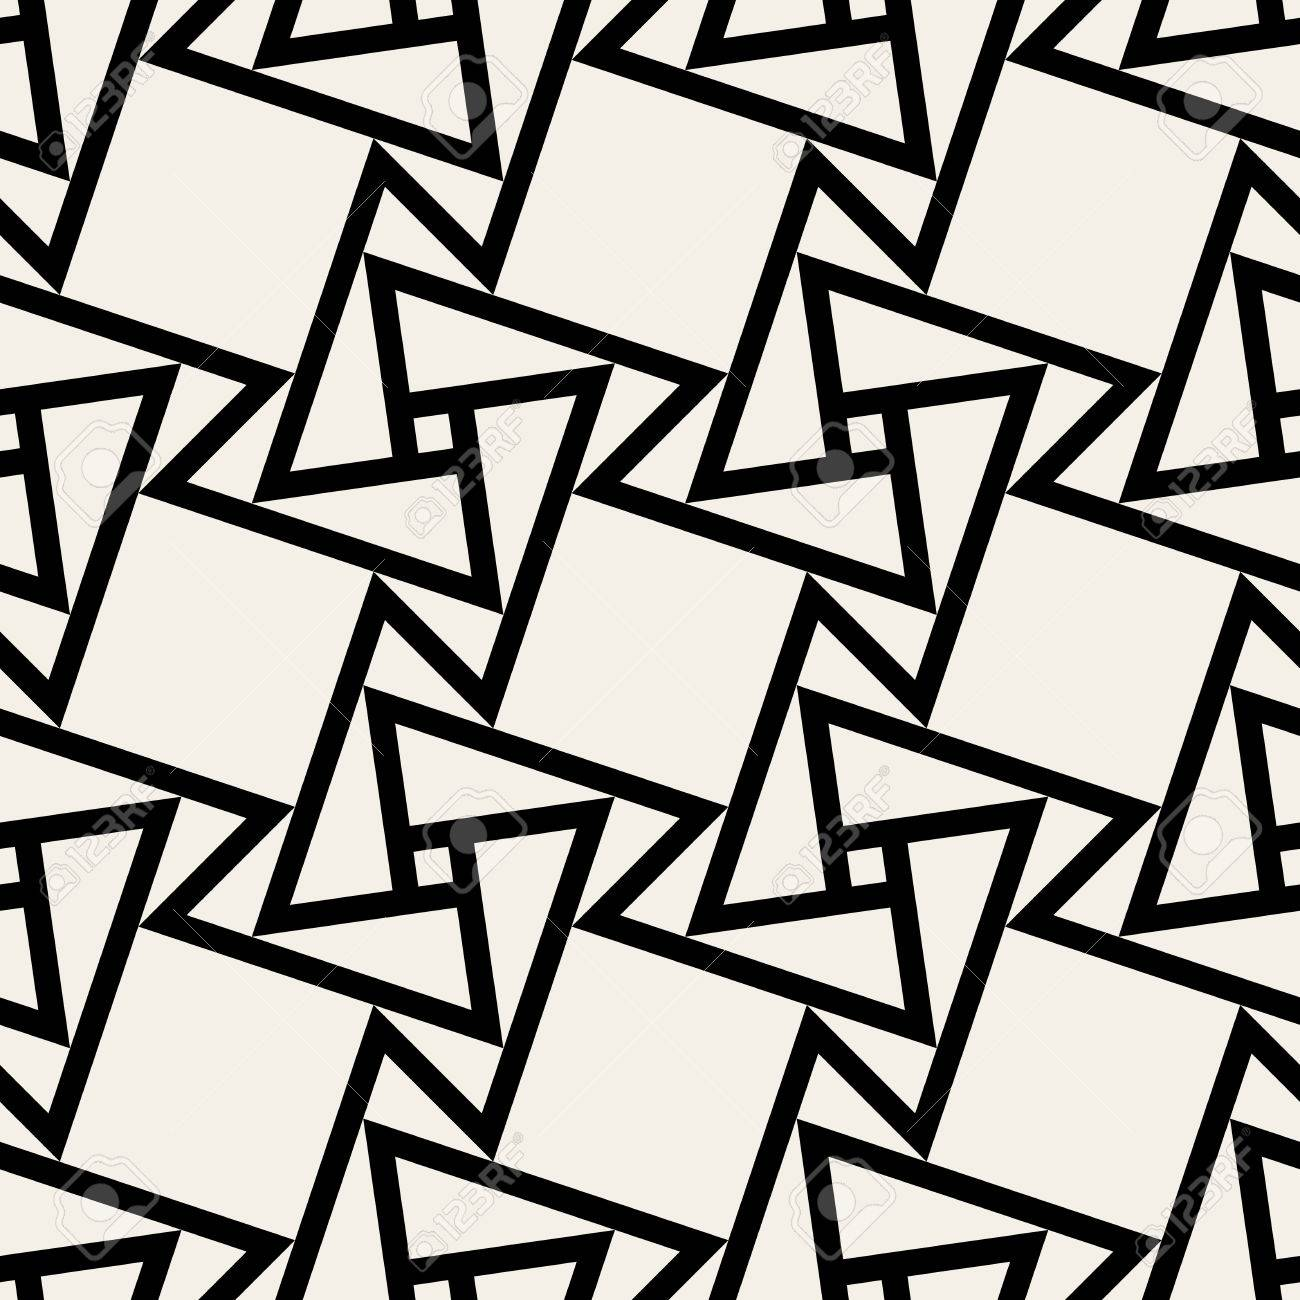 Seamless Black And White Geometric Square Tile Pattern Background ...